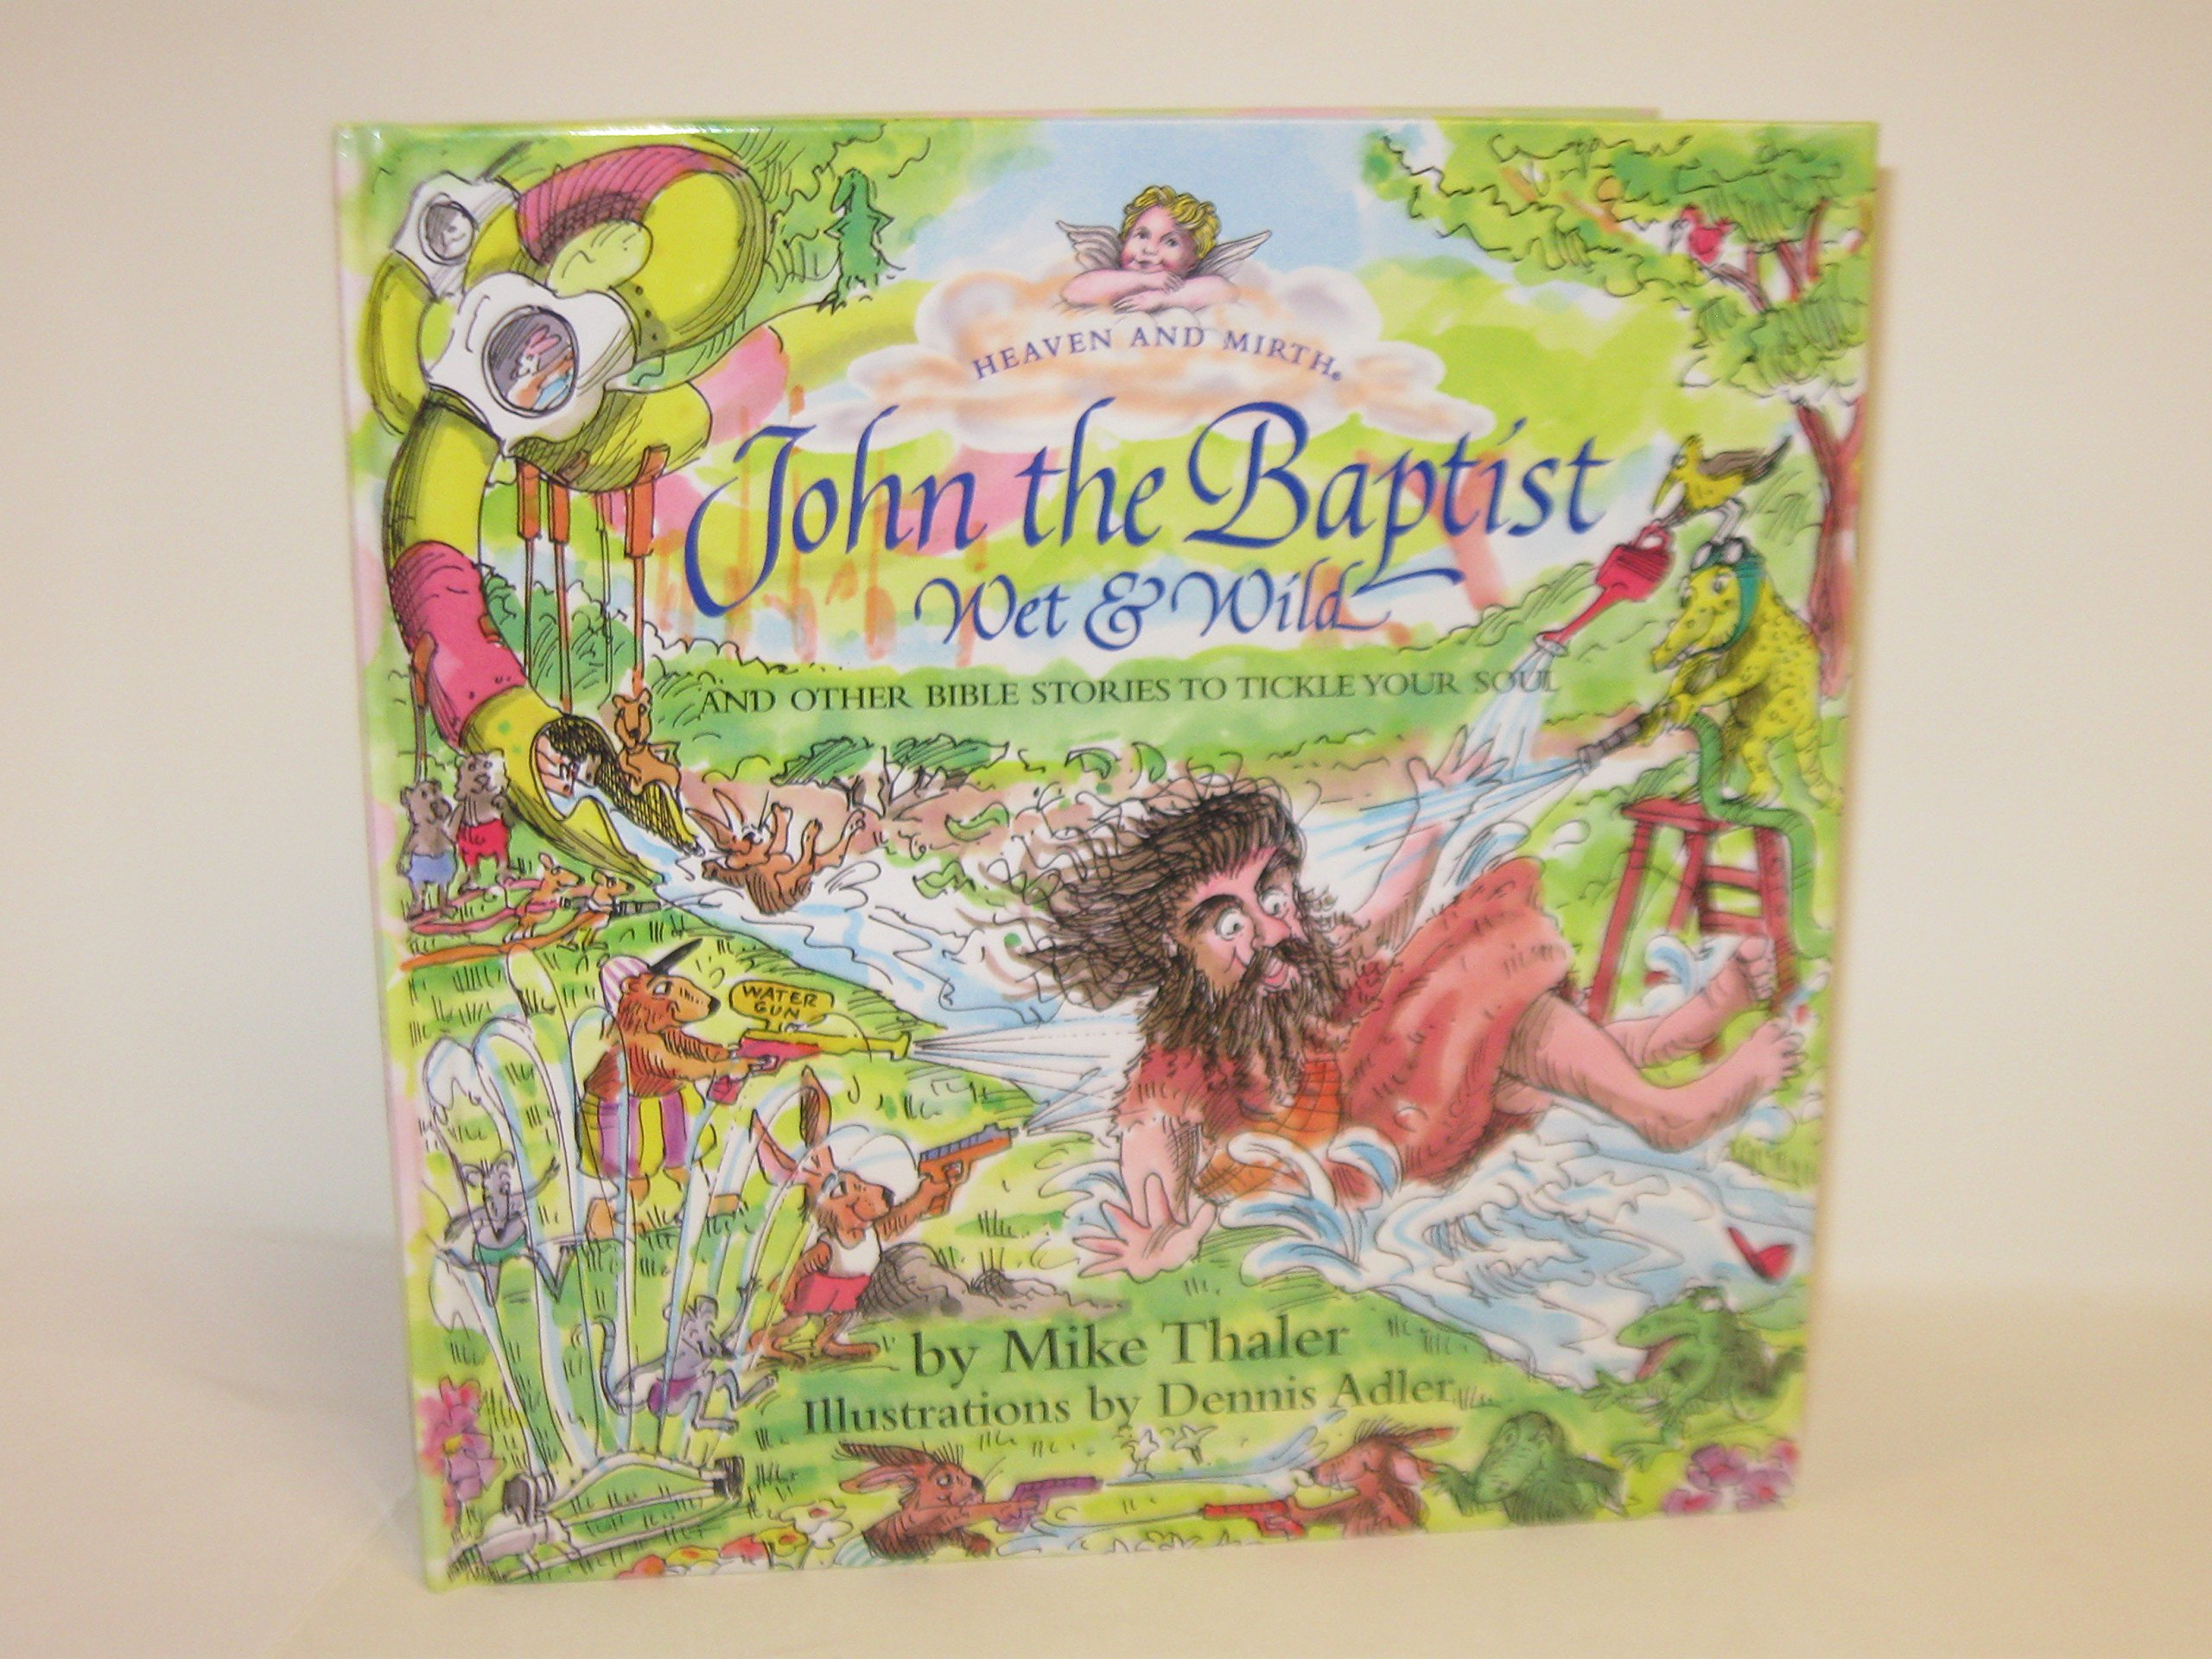 John the Baptist, Wet and Wild: And Other Bible Stories to Tickle